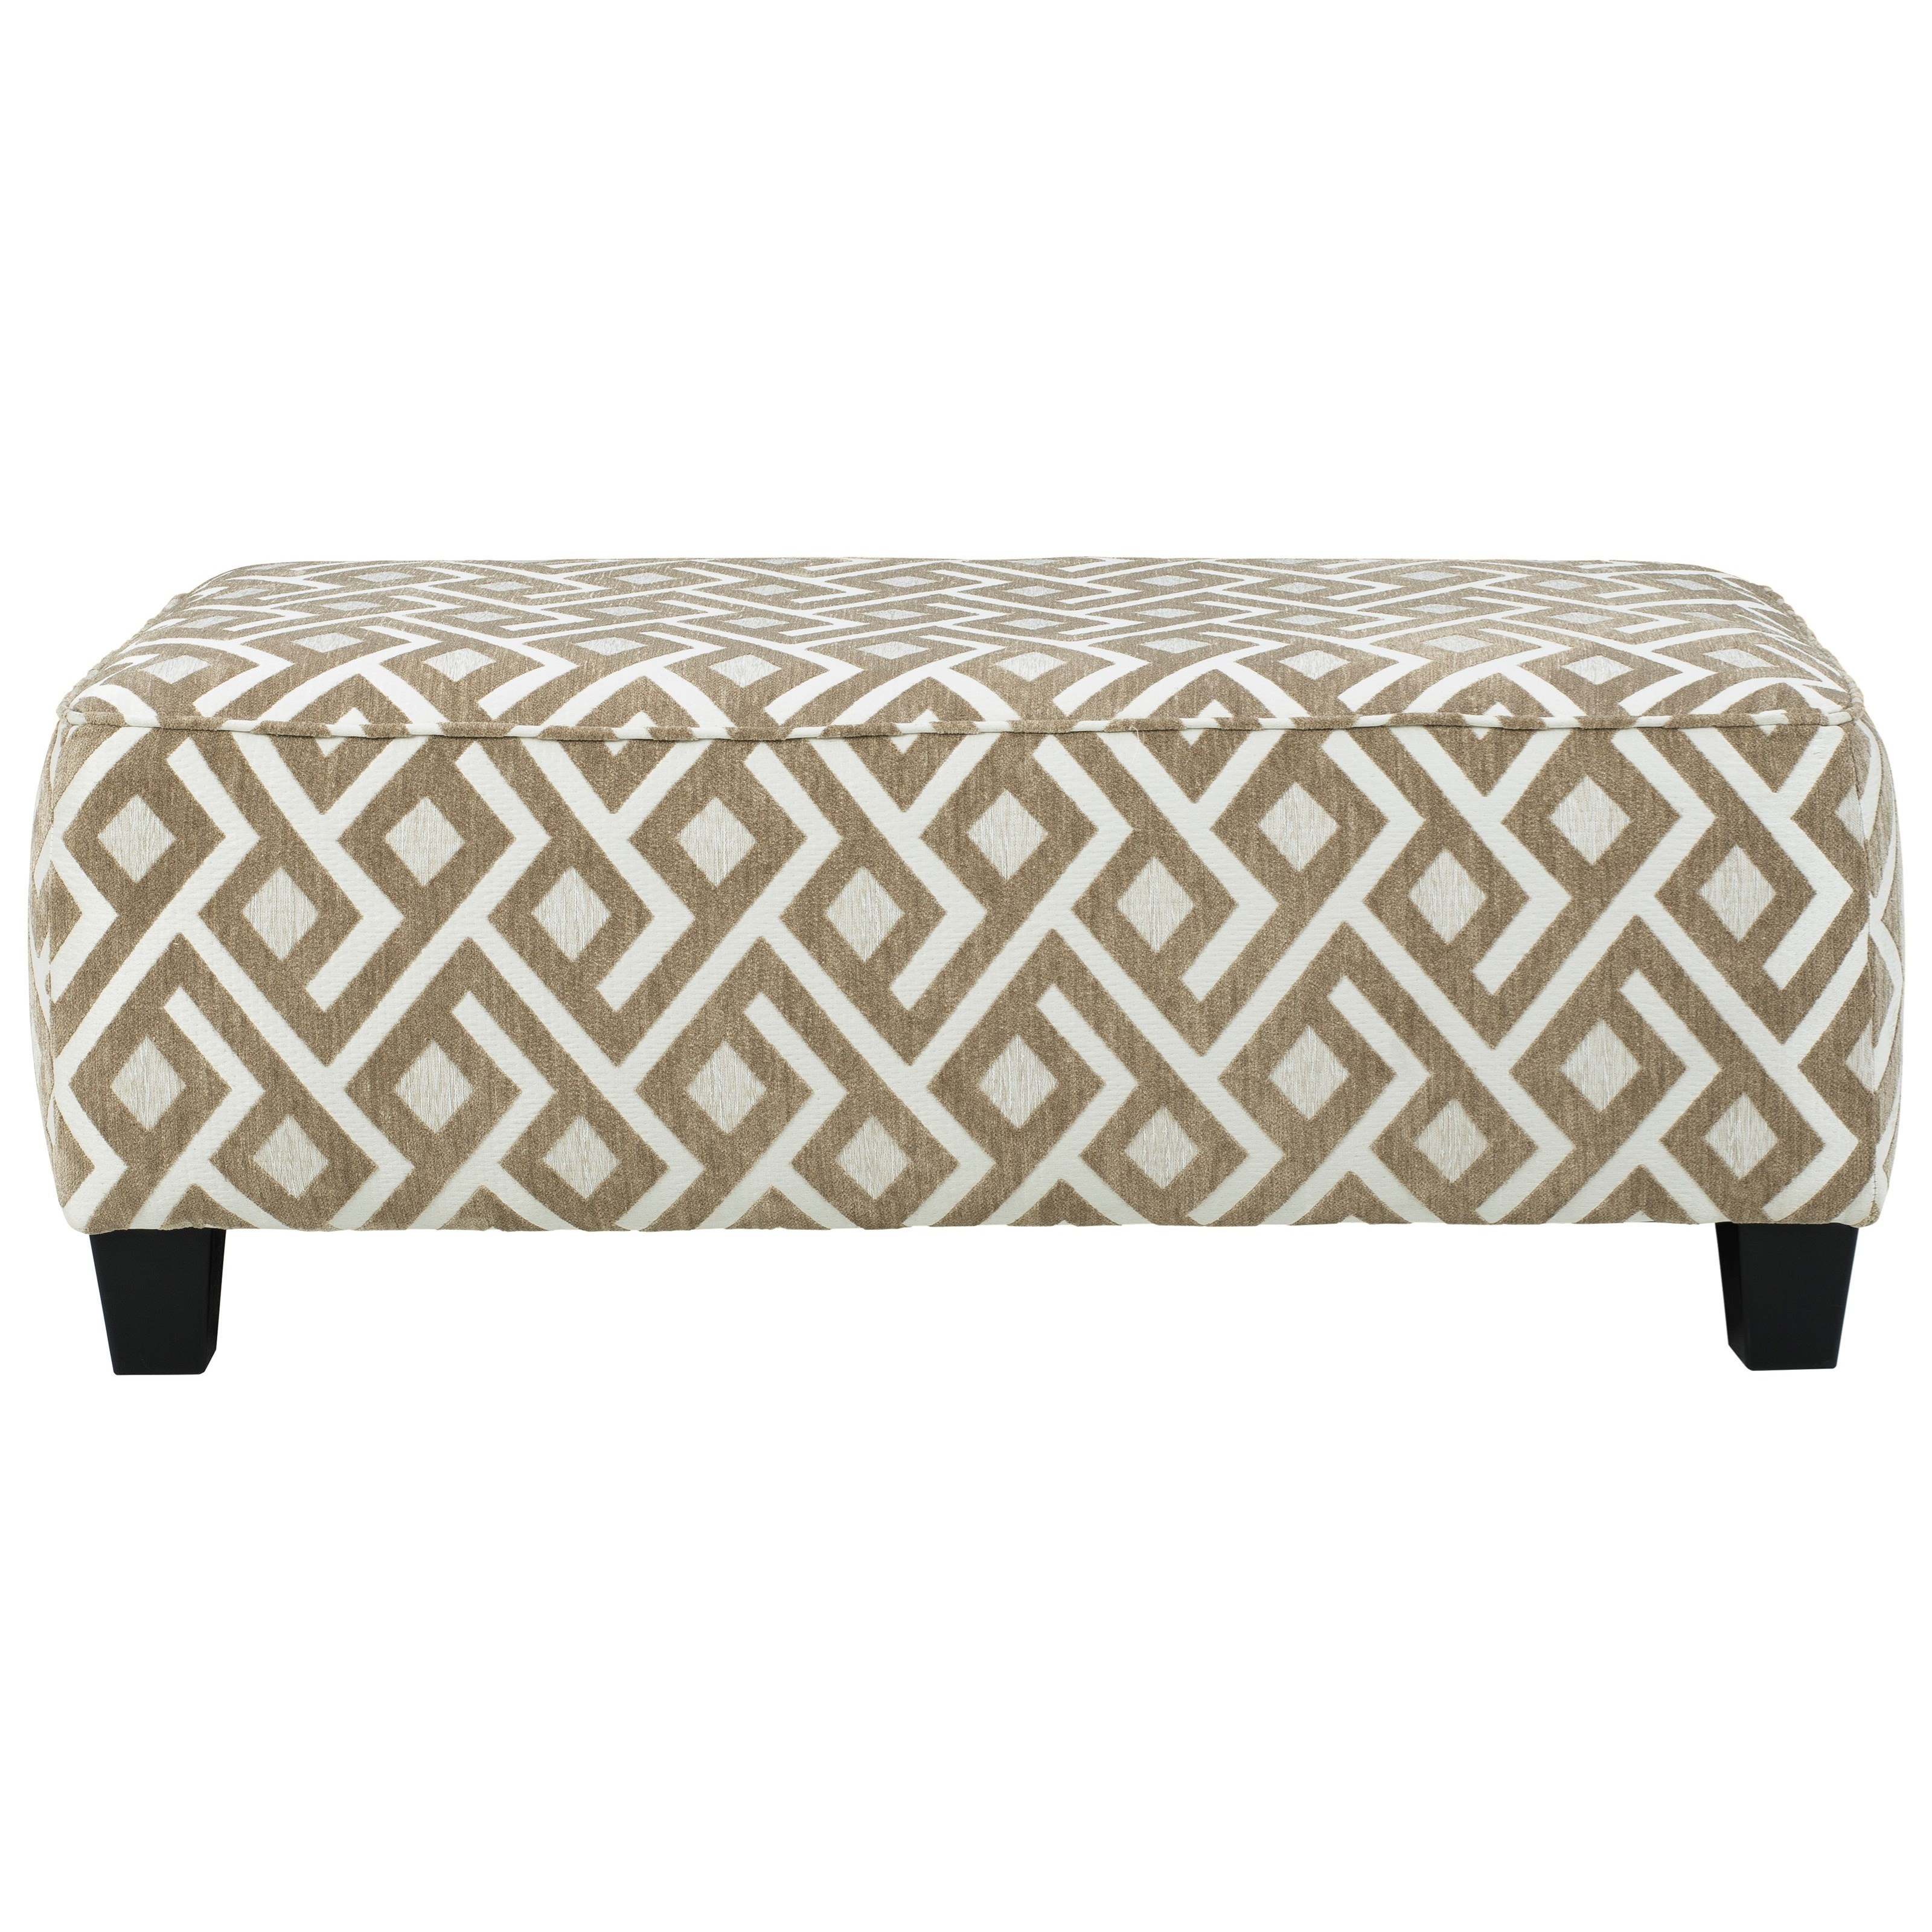 Dovemont Oversized Accent Ottoman by Signature Design by Ashley at Zak's Warehouse Clearance Center